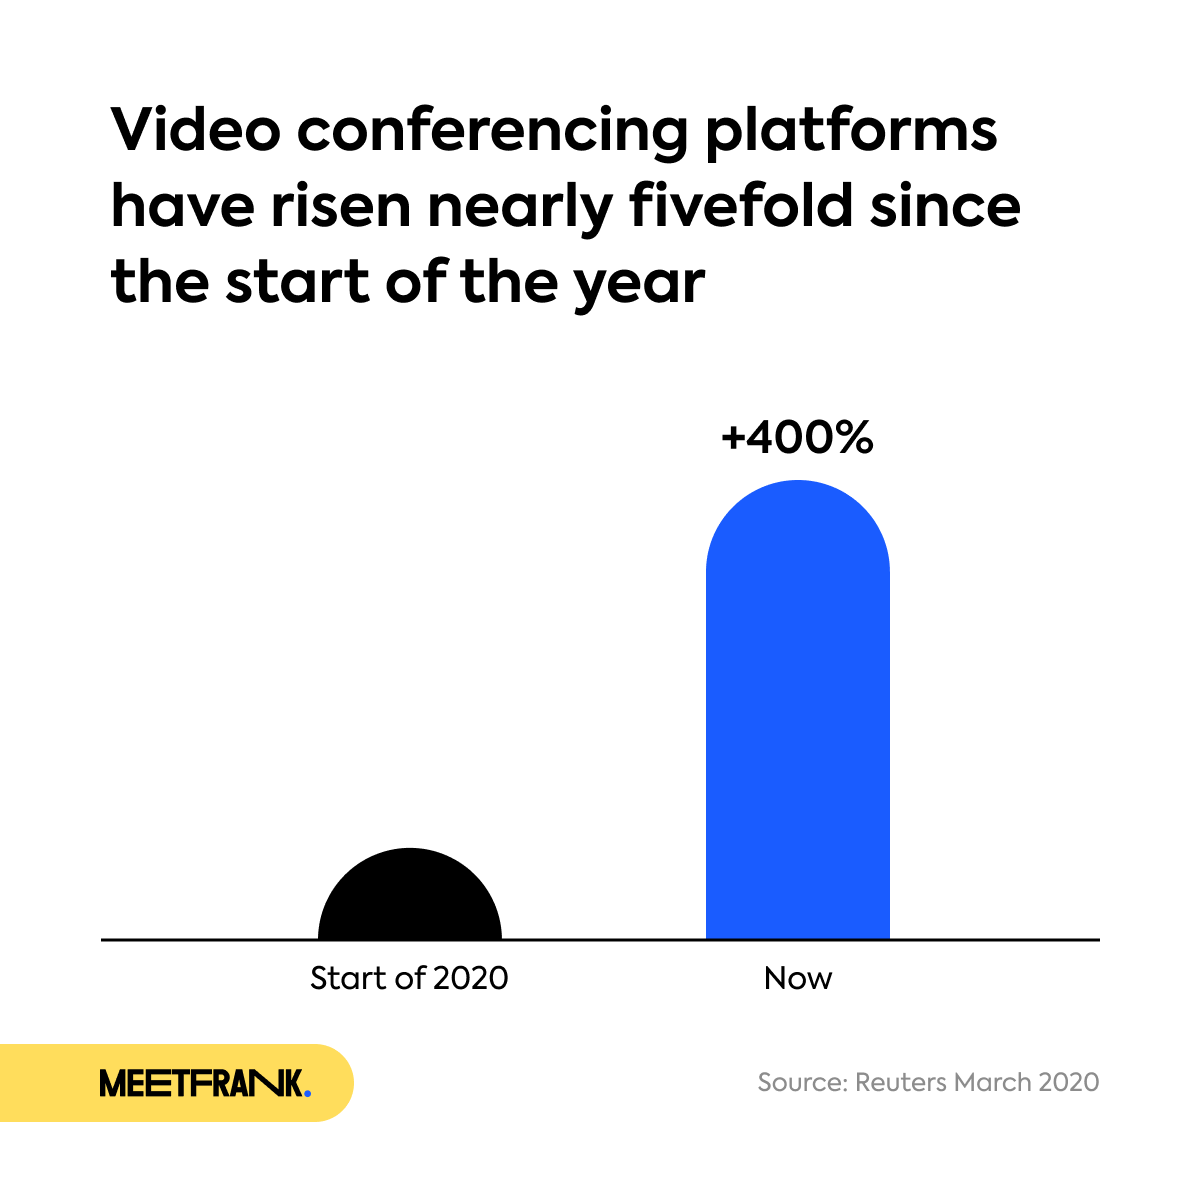 graph about the popularity of video conferencing platforms